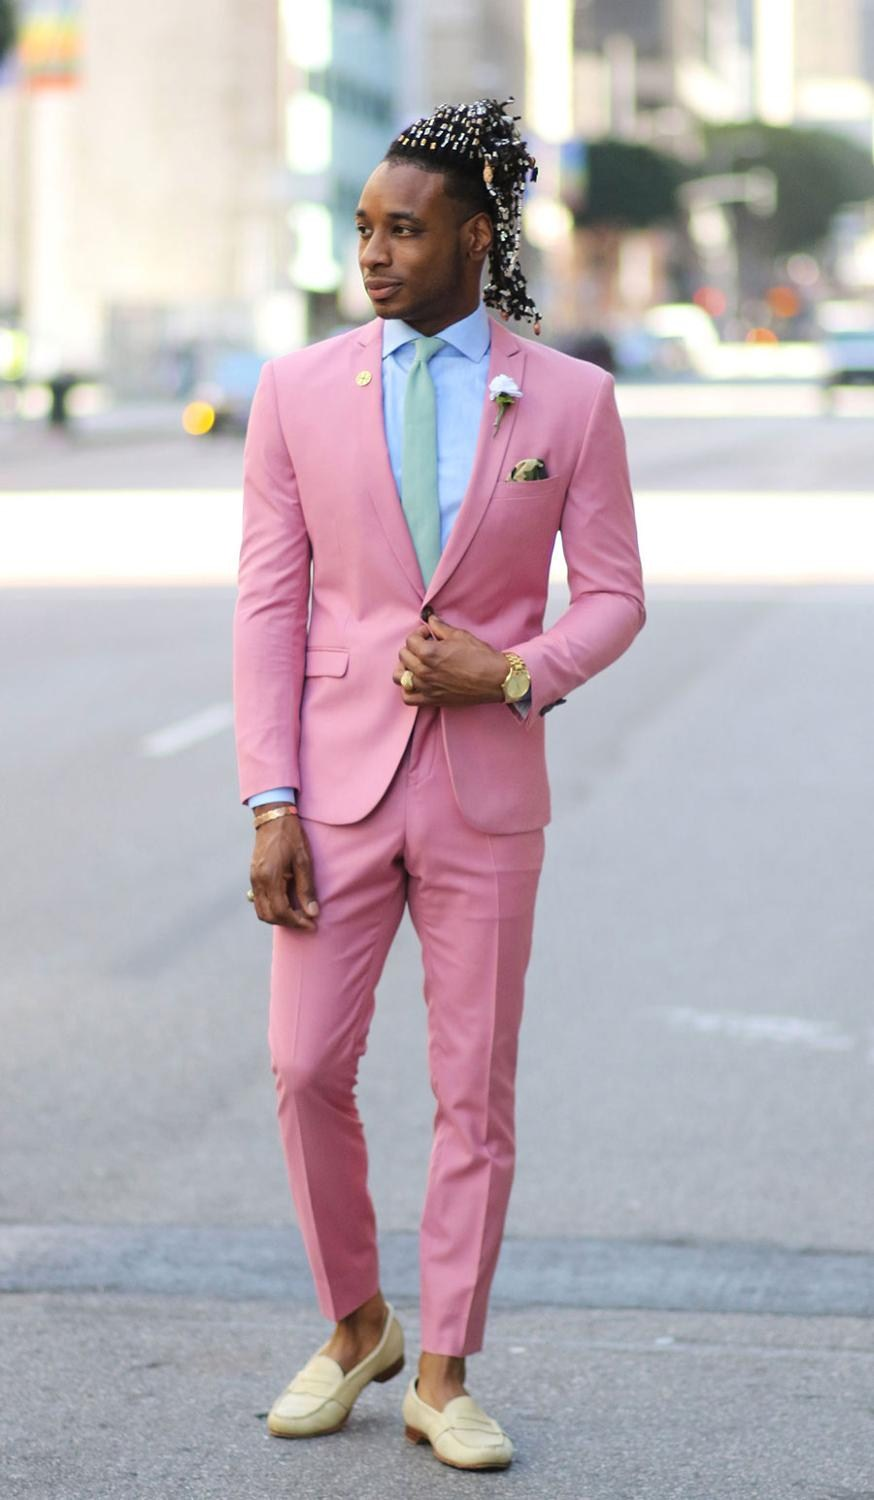 Custom Made Groomsmen Notch Lapel Groom Tuxedos Pink Men Suits Wedding/Prom Best Man Blazer (Jacket+Pants+Tie) Z672